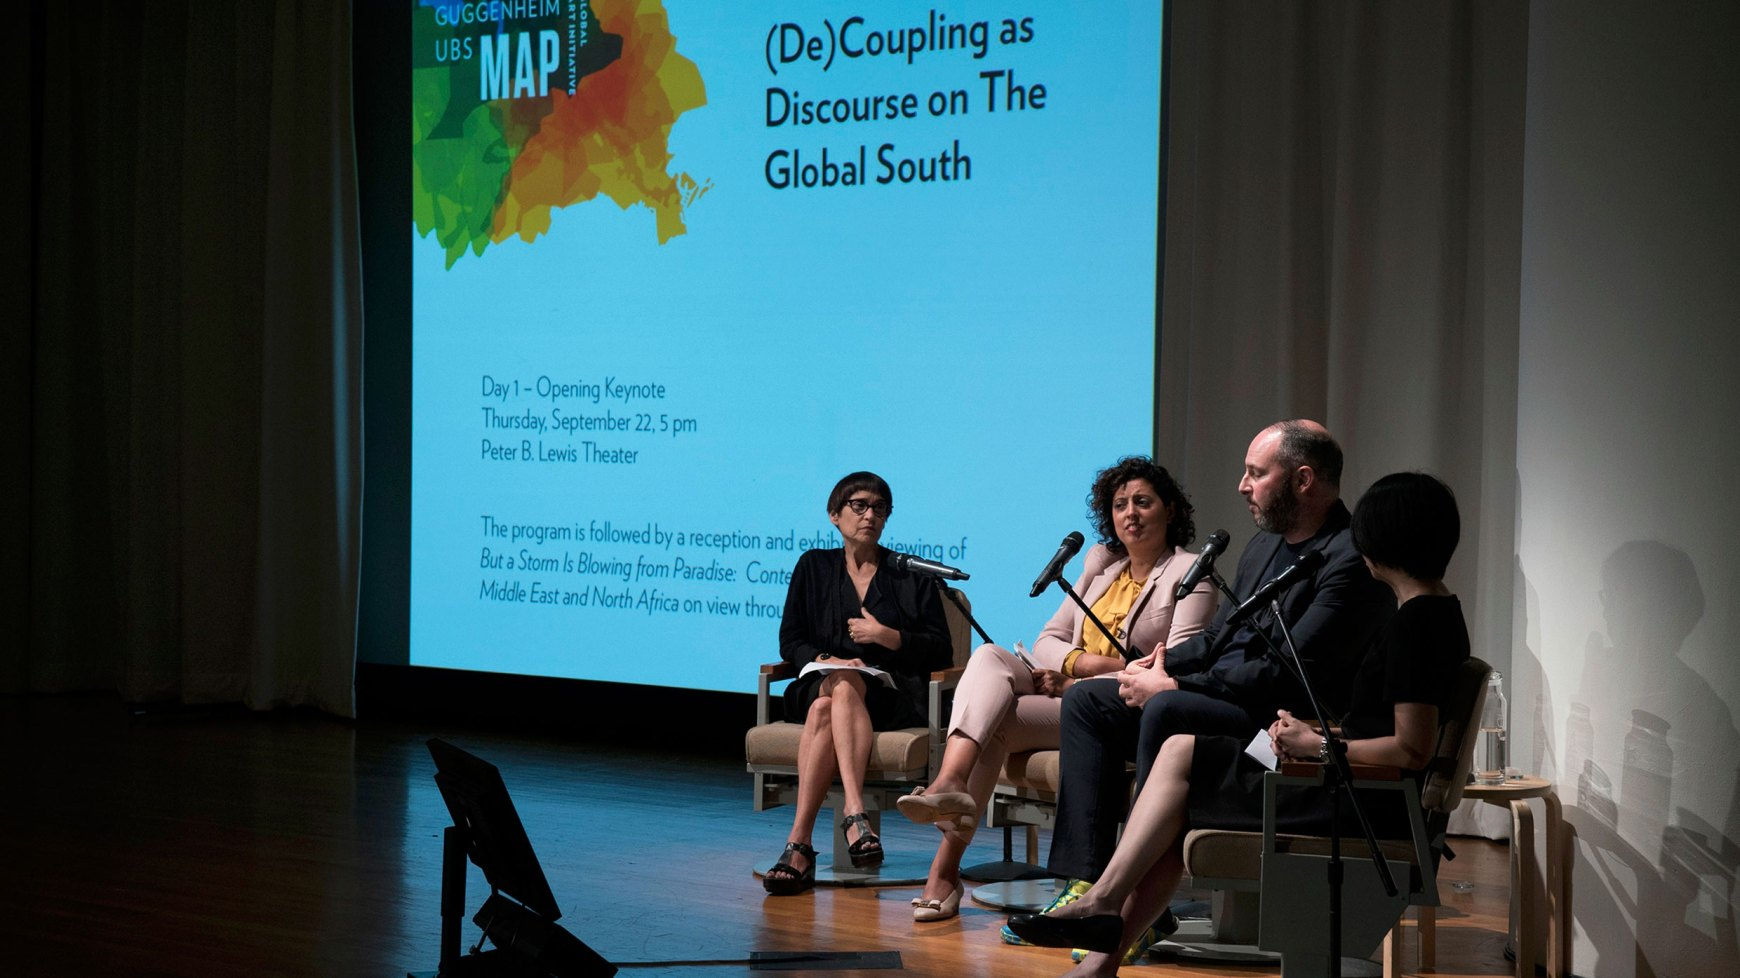 On The Map Guggenheim Director And Curators Speak About Global